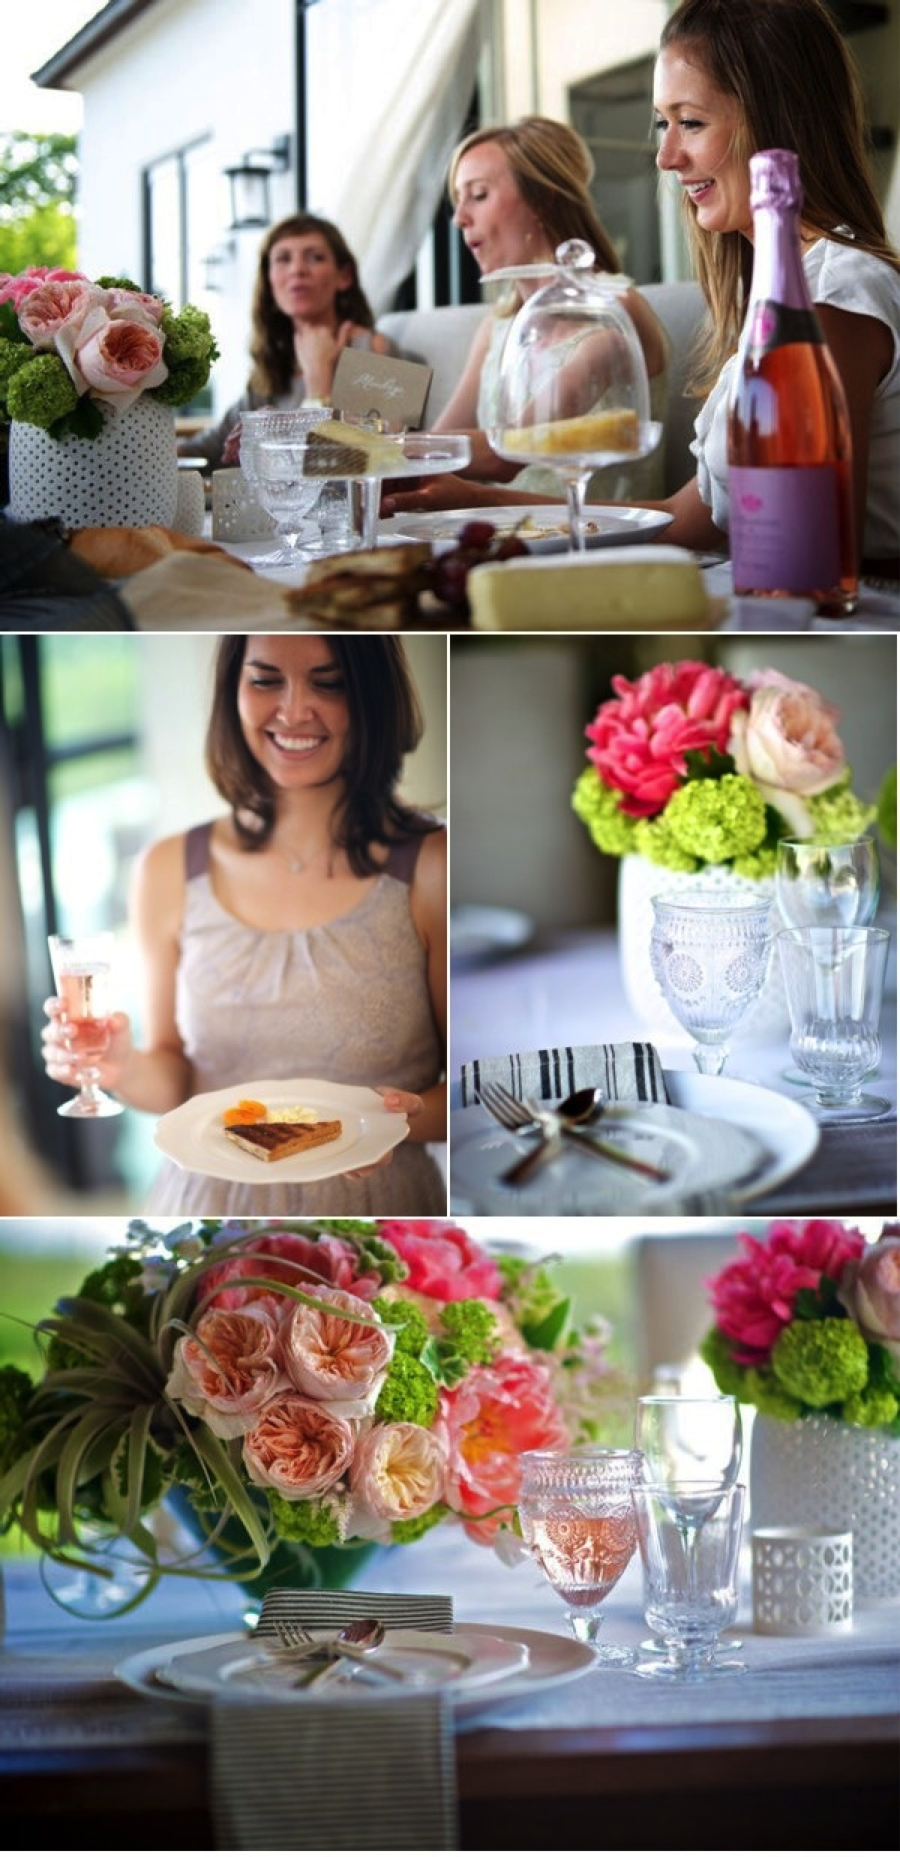 Bridal Shower inspiration from StudioWed's Pinterest.